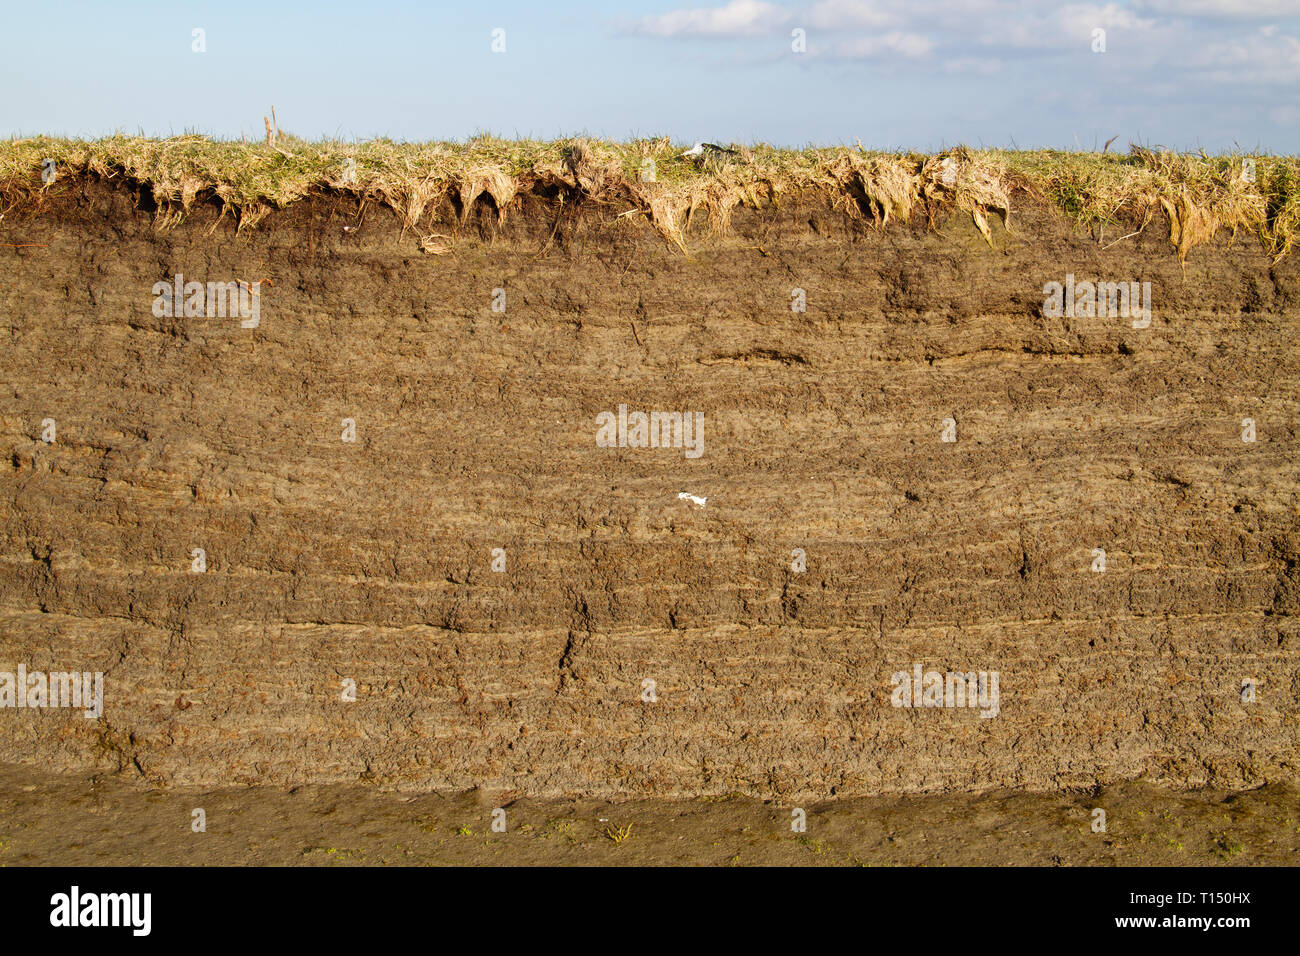 Tidal marsh soil profile in the cutbank of a creek, the result of accretion and erosion, layers of clay with small fragments of shells - Stock Image